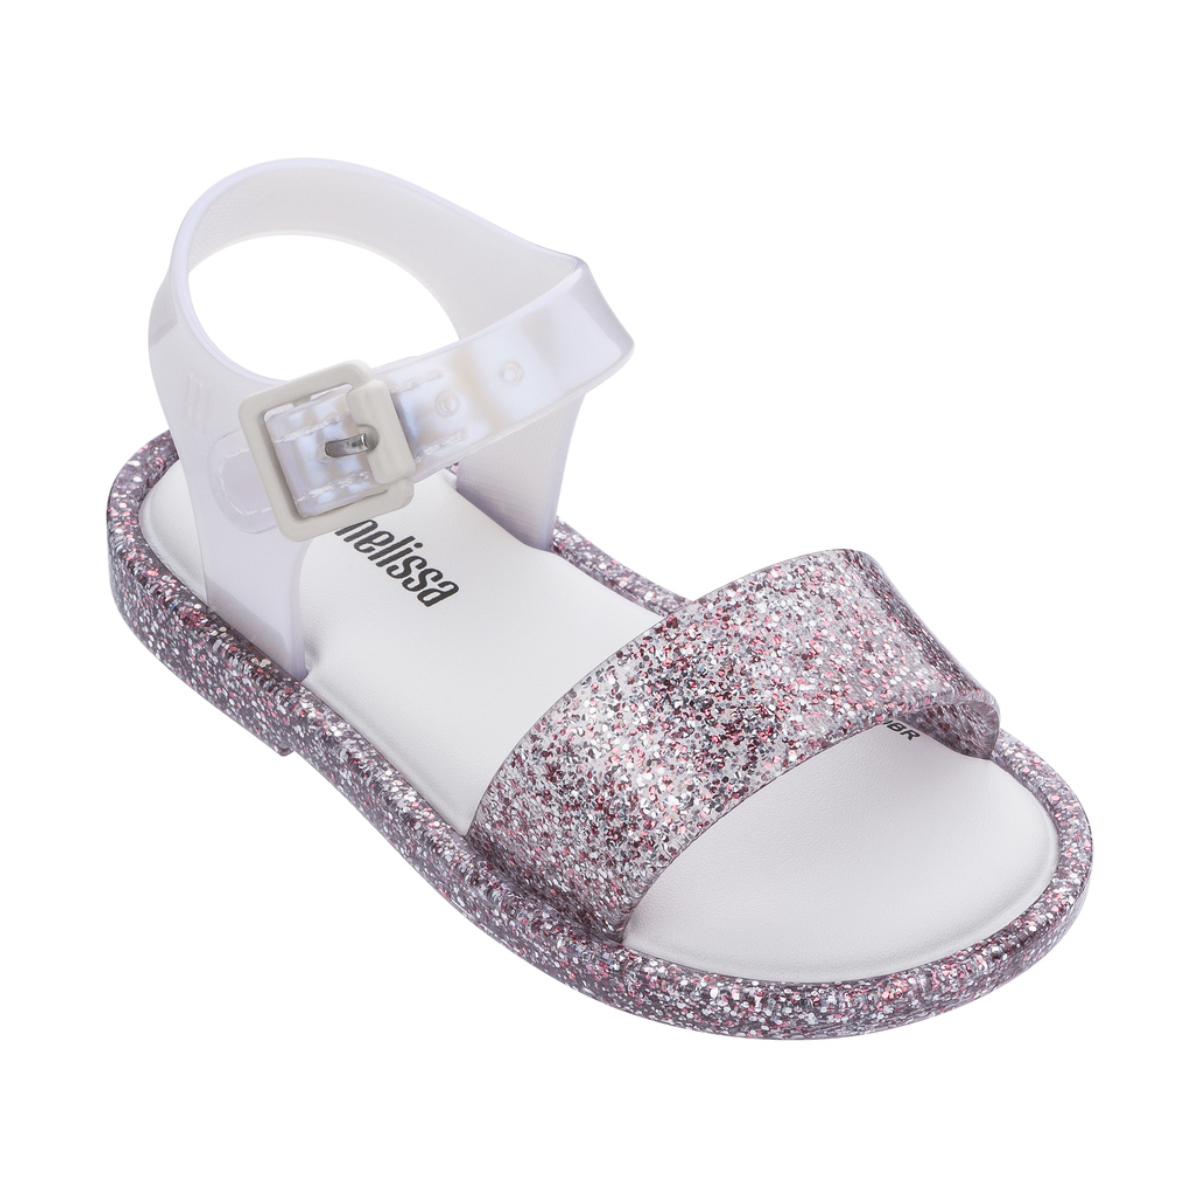 Mini Melissa Mar Sandal IV Bb in Glitter